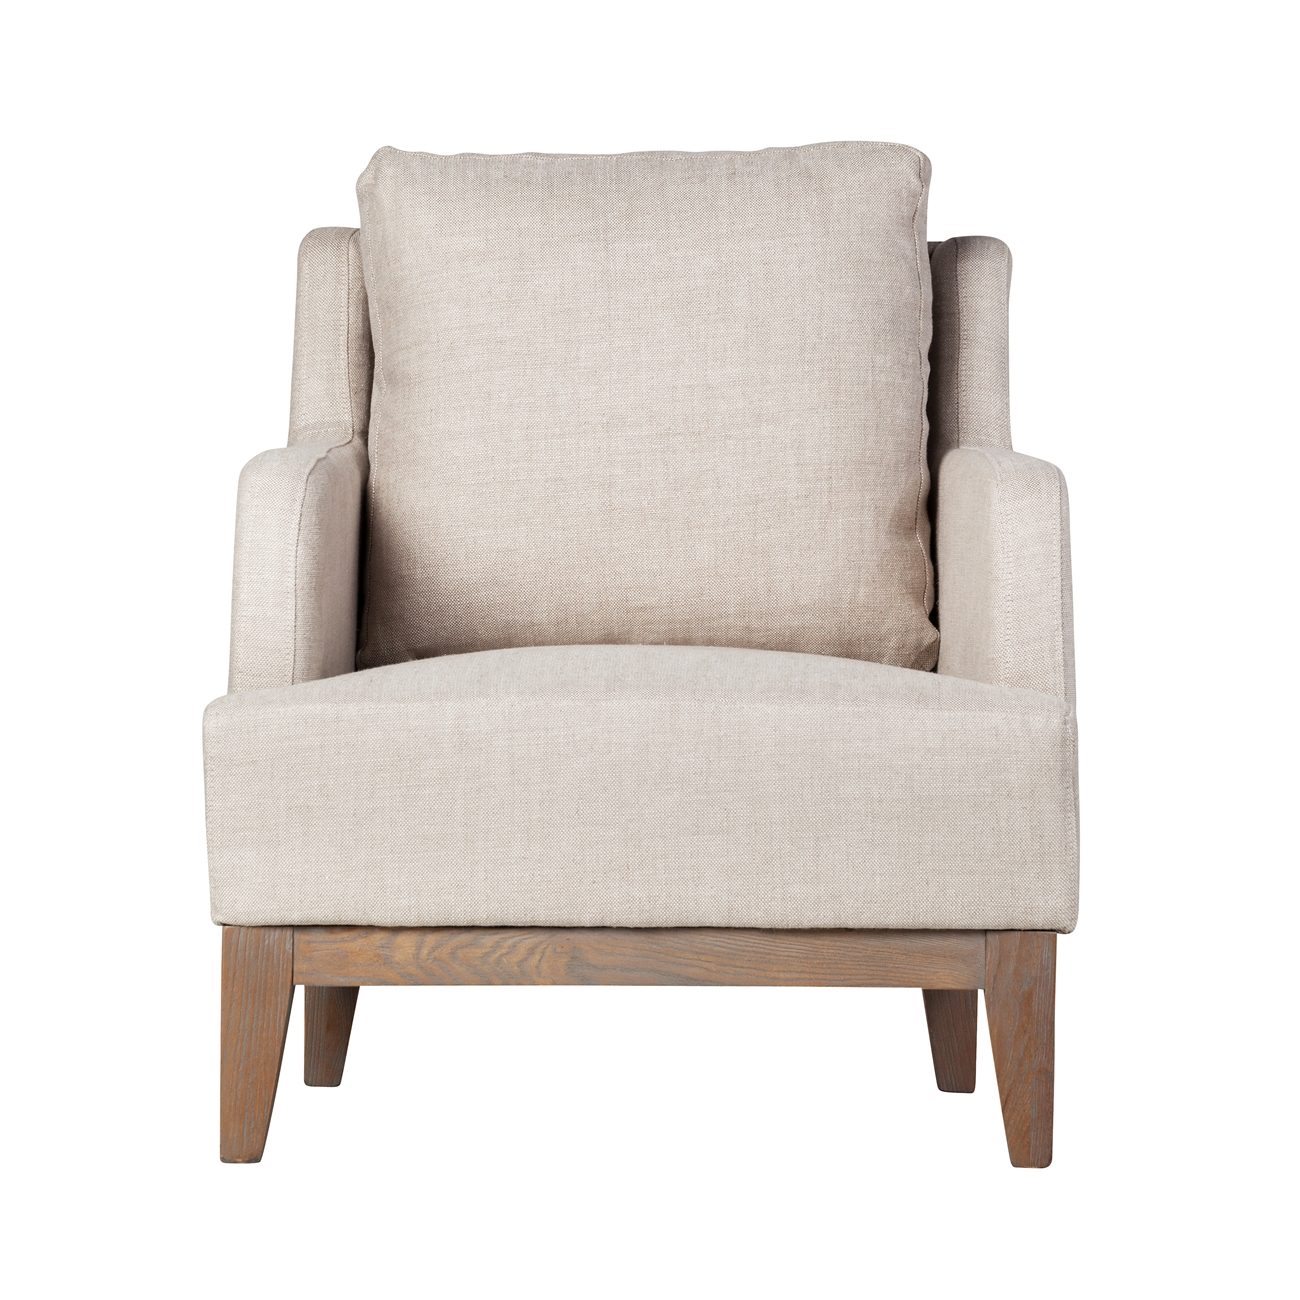 Alexander Off-White Linen Chair  sc 1 st  The Khazana & Alexander White Linen Chair The Khazana Home Austin Furniture Store